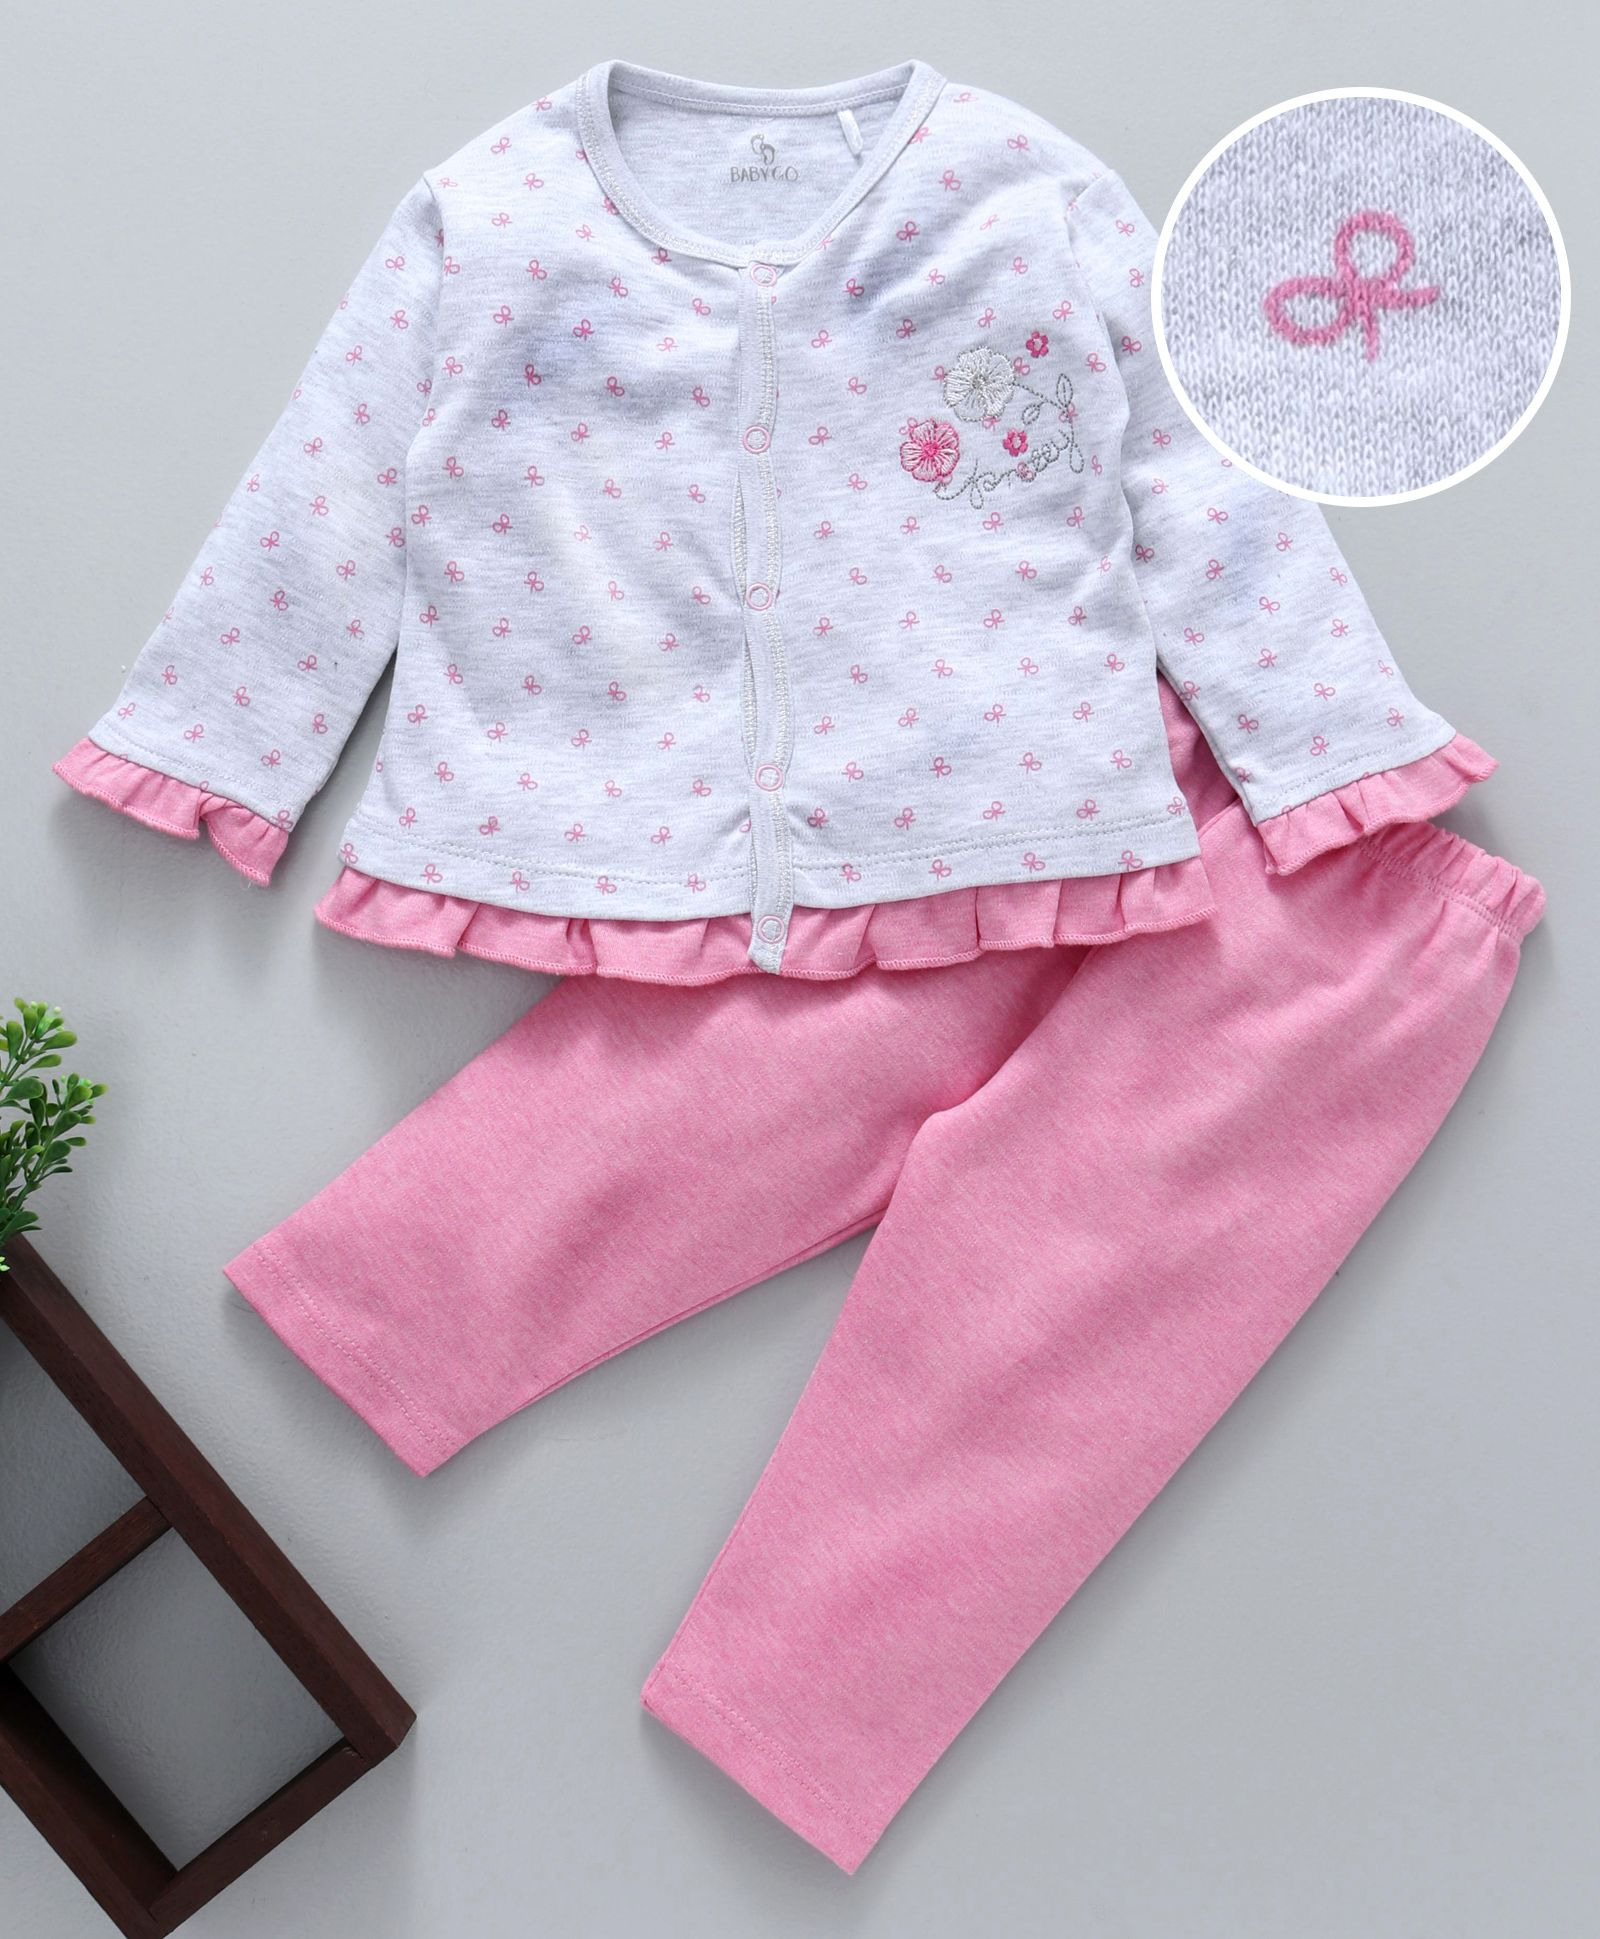 e9287f212dc34 Buy Baby Go Full Sleeves Night Suit Bow Print Grey & Pink for Girls (6-12  Months) Online in India, Shop at FirstCry.com - 2309061